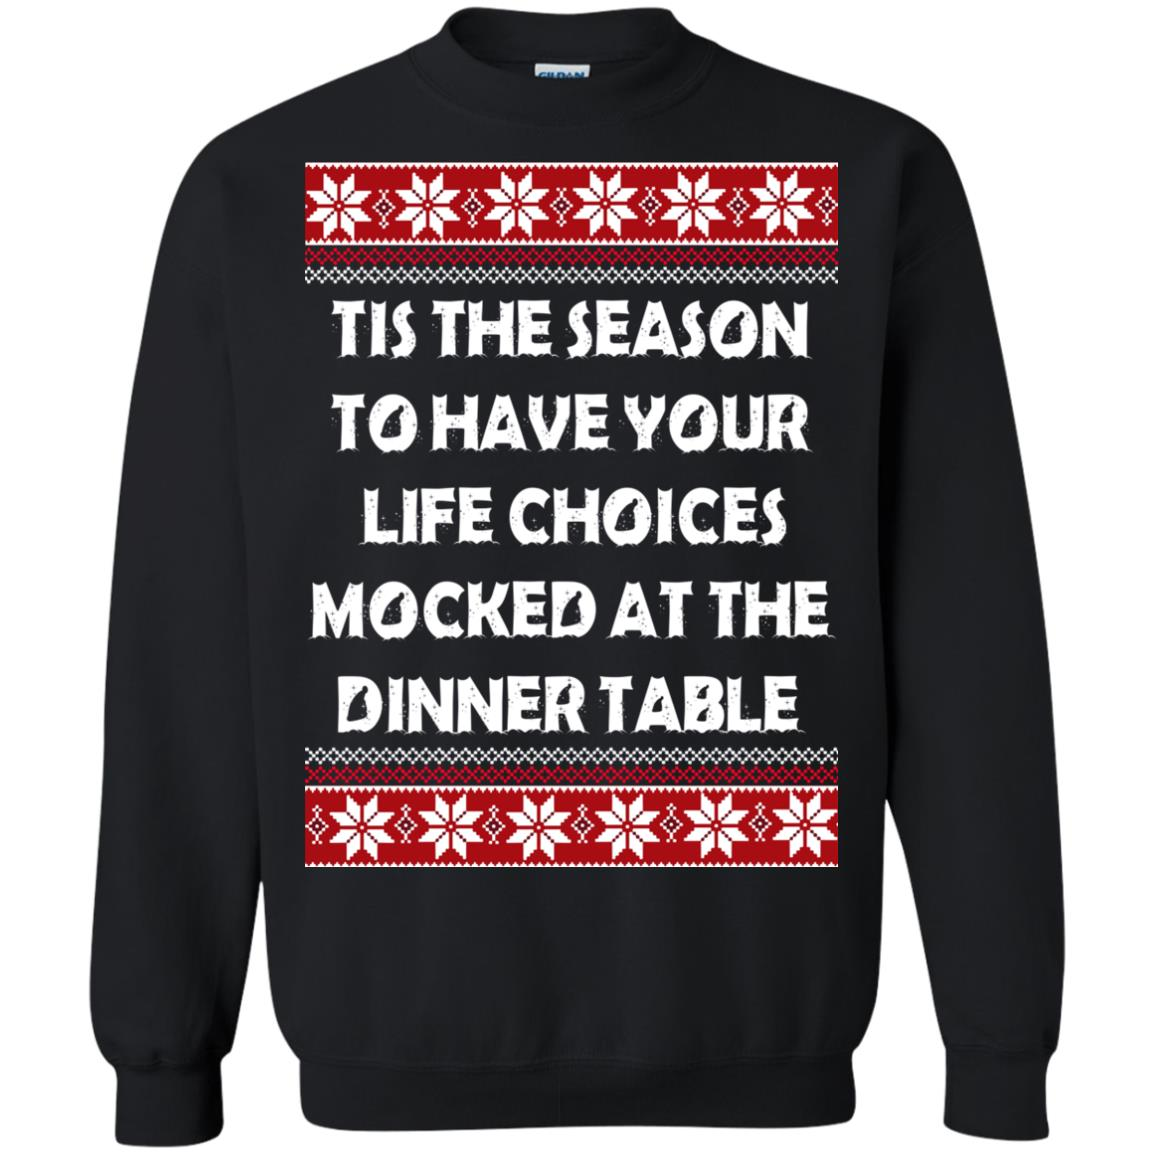 image 5896 - Tis The Season To Have Your Life Choices Mocked Christmas Sweater, Hoodie